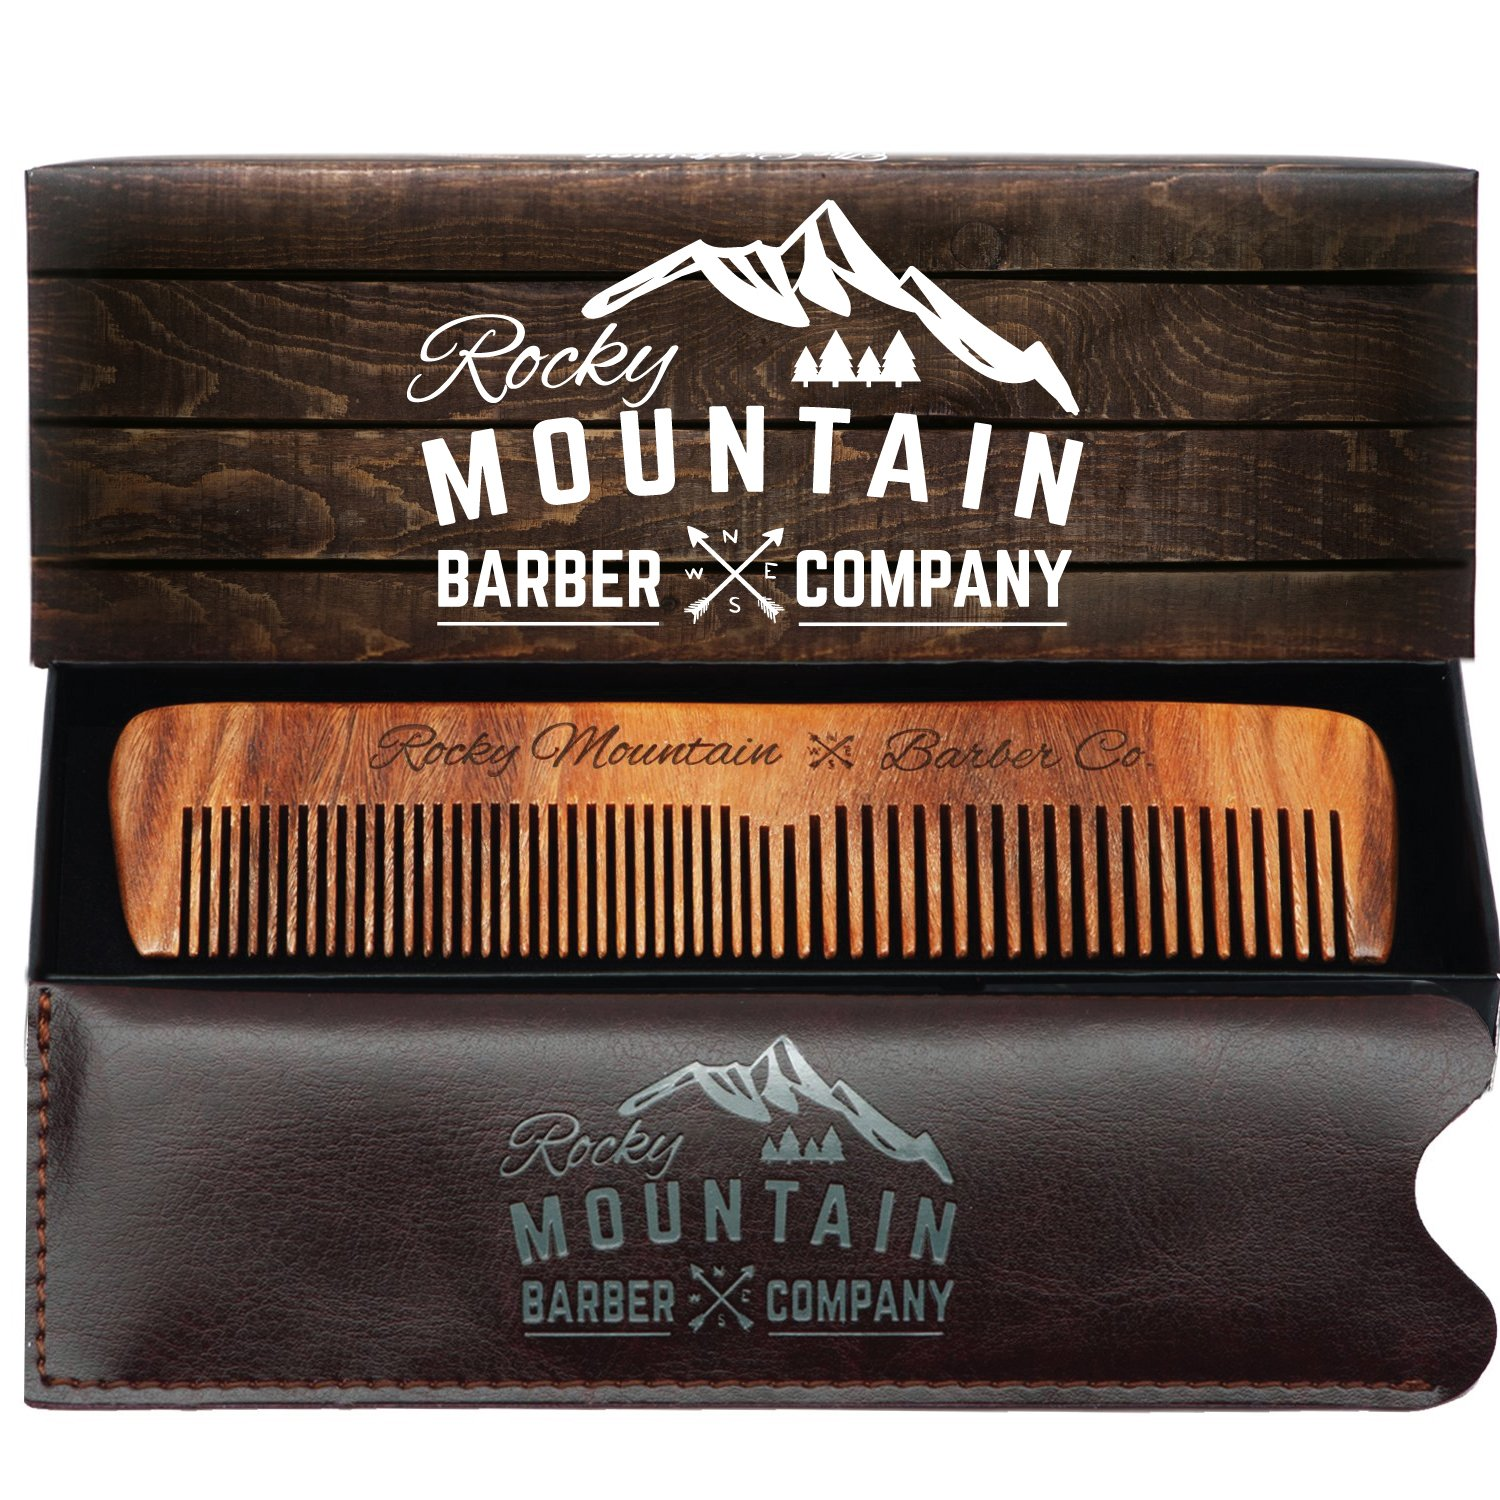 Hair Comb - Wood with Anti-Static & No Snag with Fine and Medium Tooth for Head Hair, Beard, Mustache with Premium Carrying Pouch in Design in Gift Box by Rocky Mountain by Rocky Mountain Barber Company